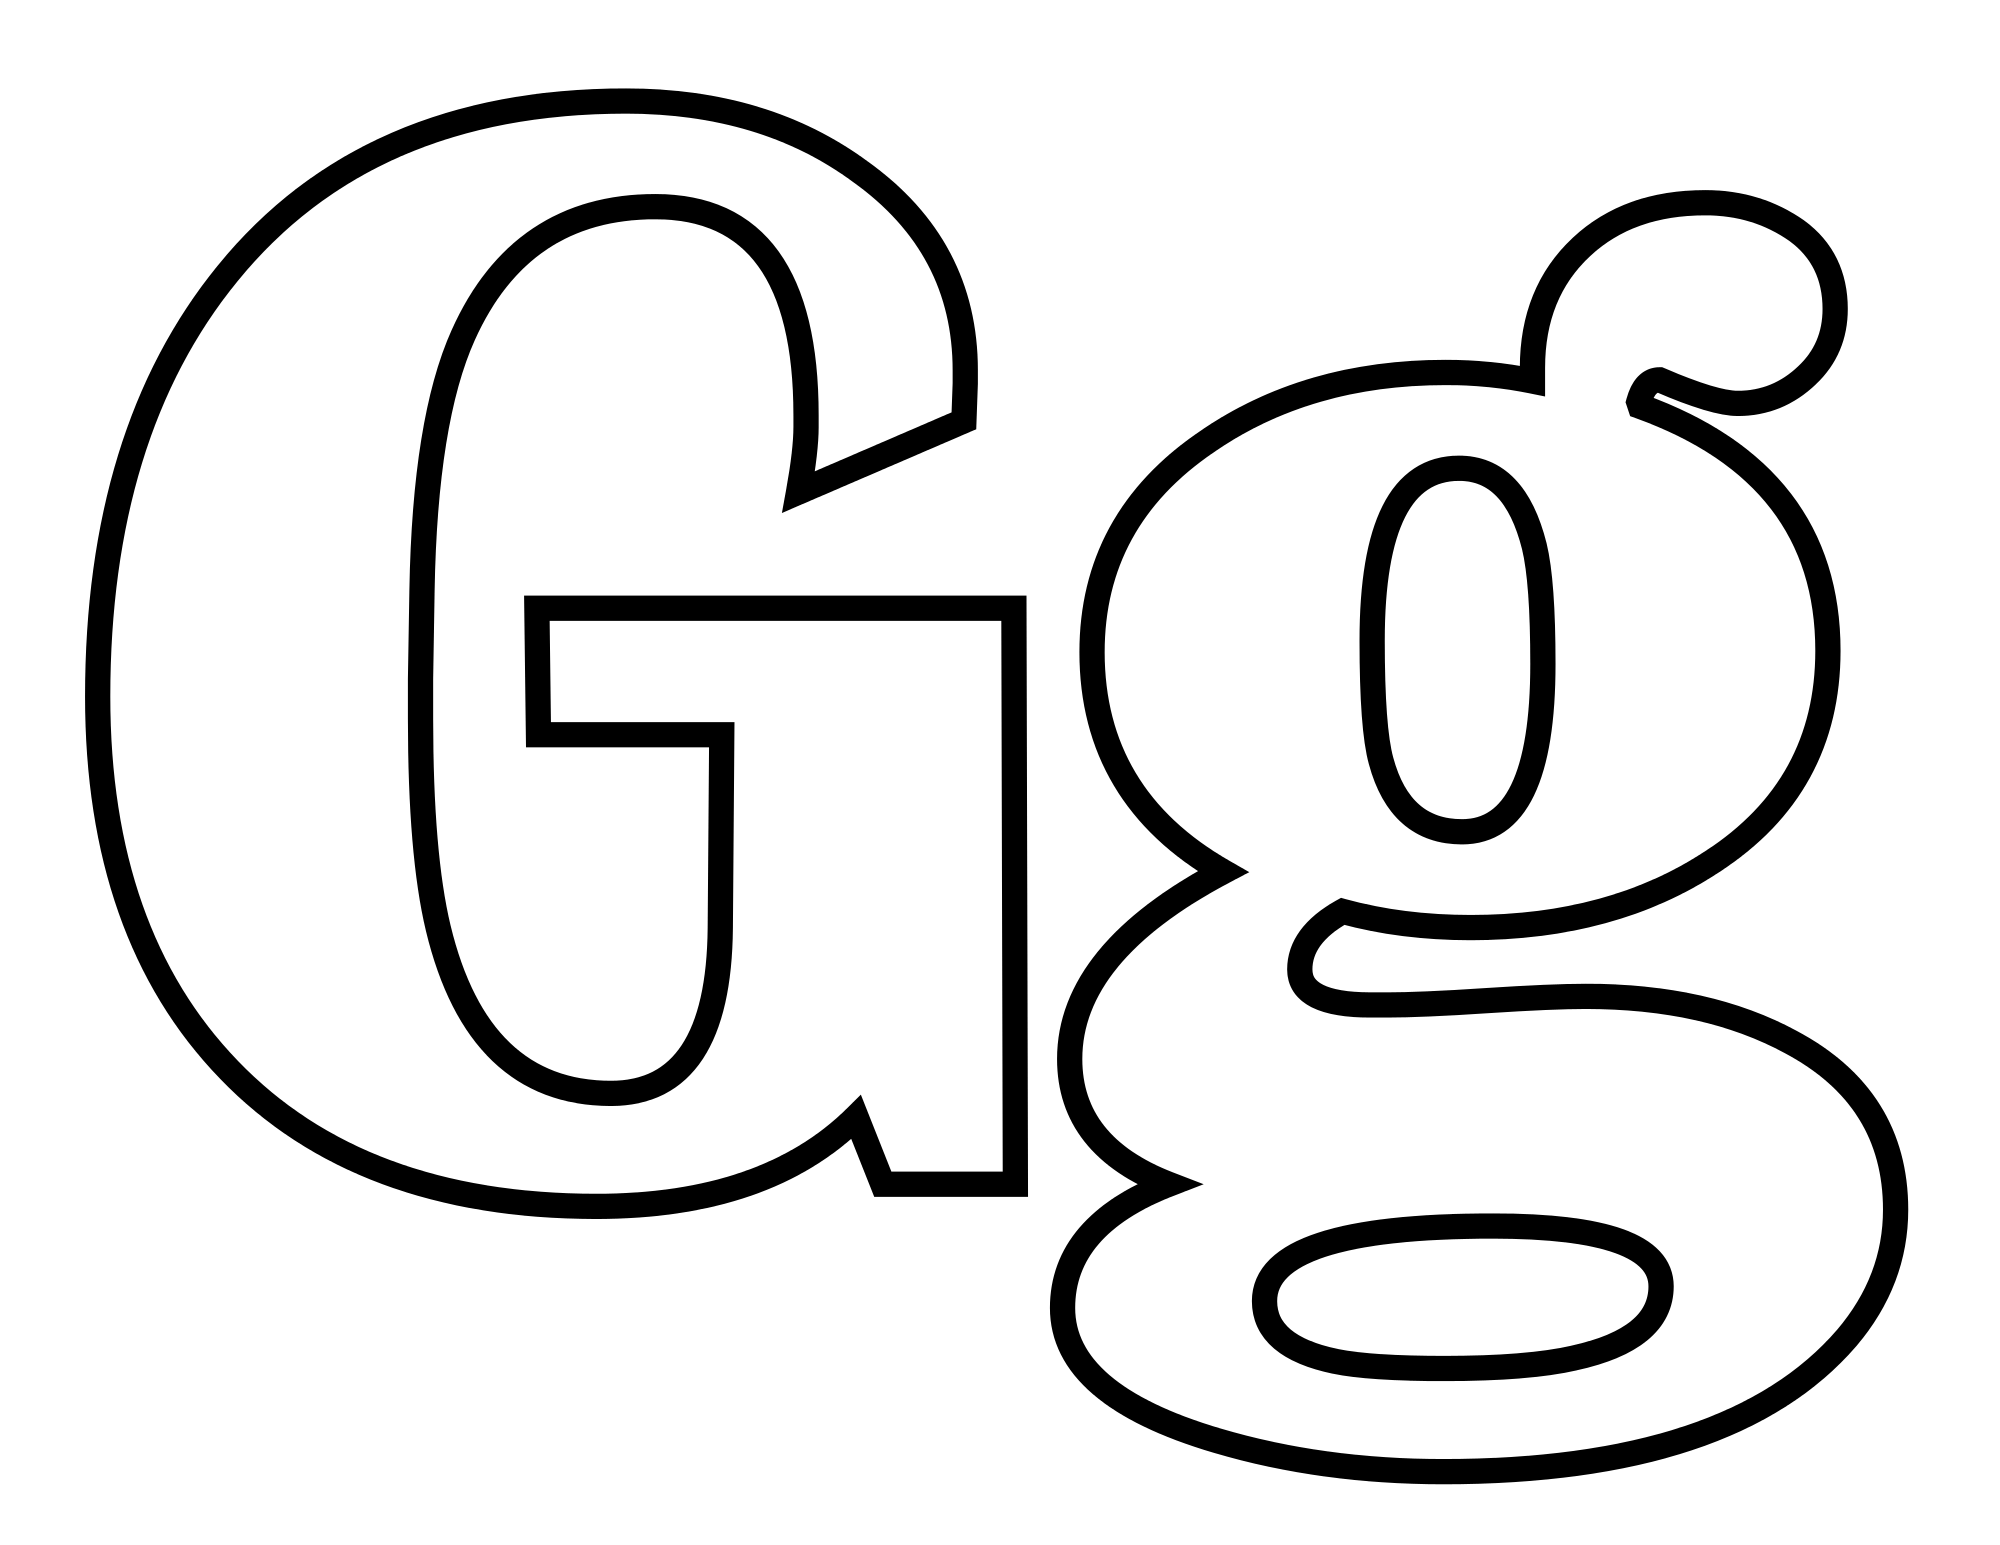 Letter G Drawing At Getdrawings